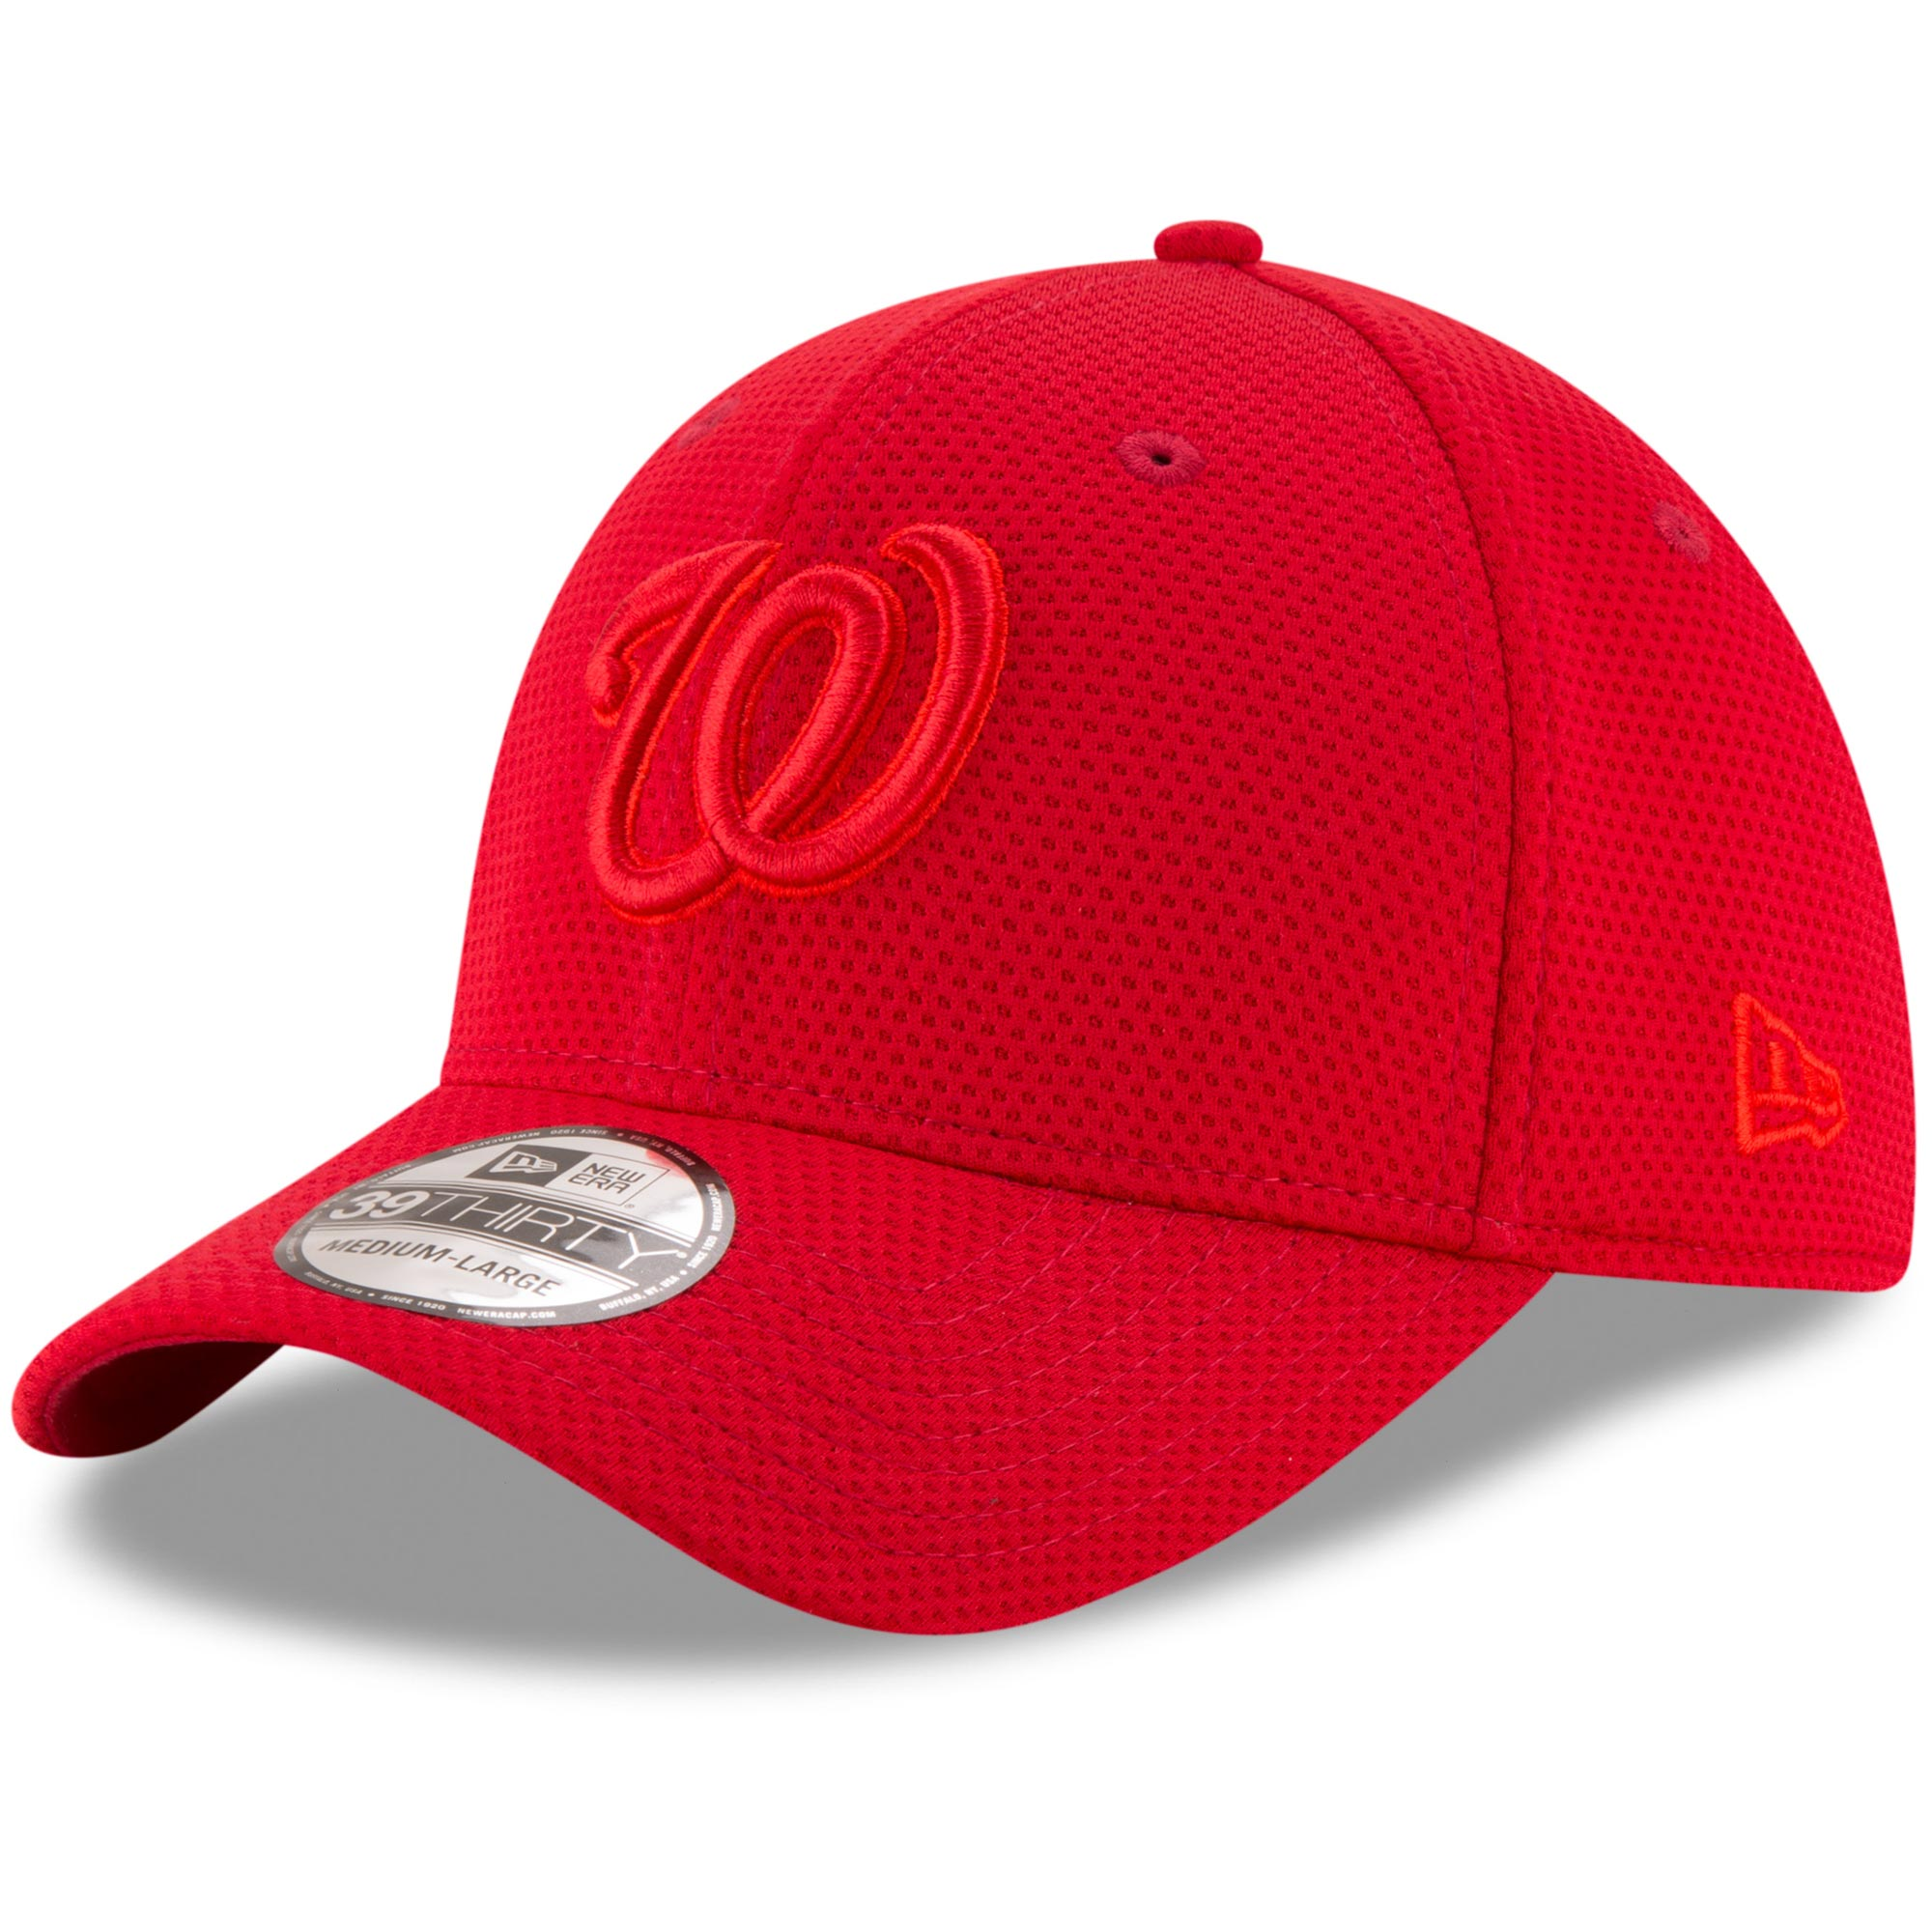 Washington Nationals New Era Tone Tech Redux 39THIRTY Flex Hat - Red